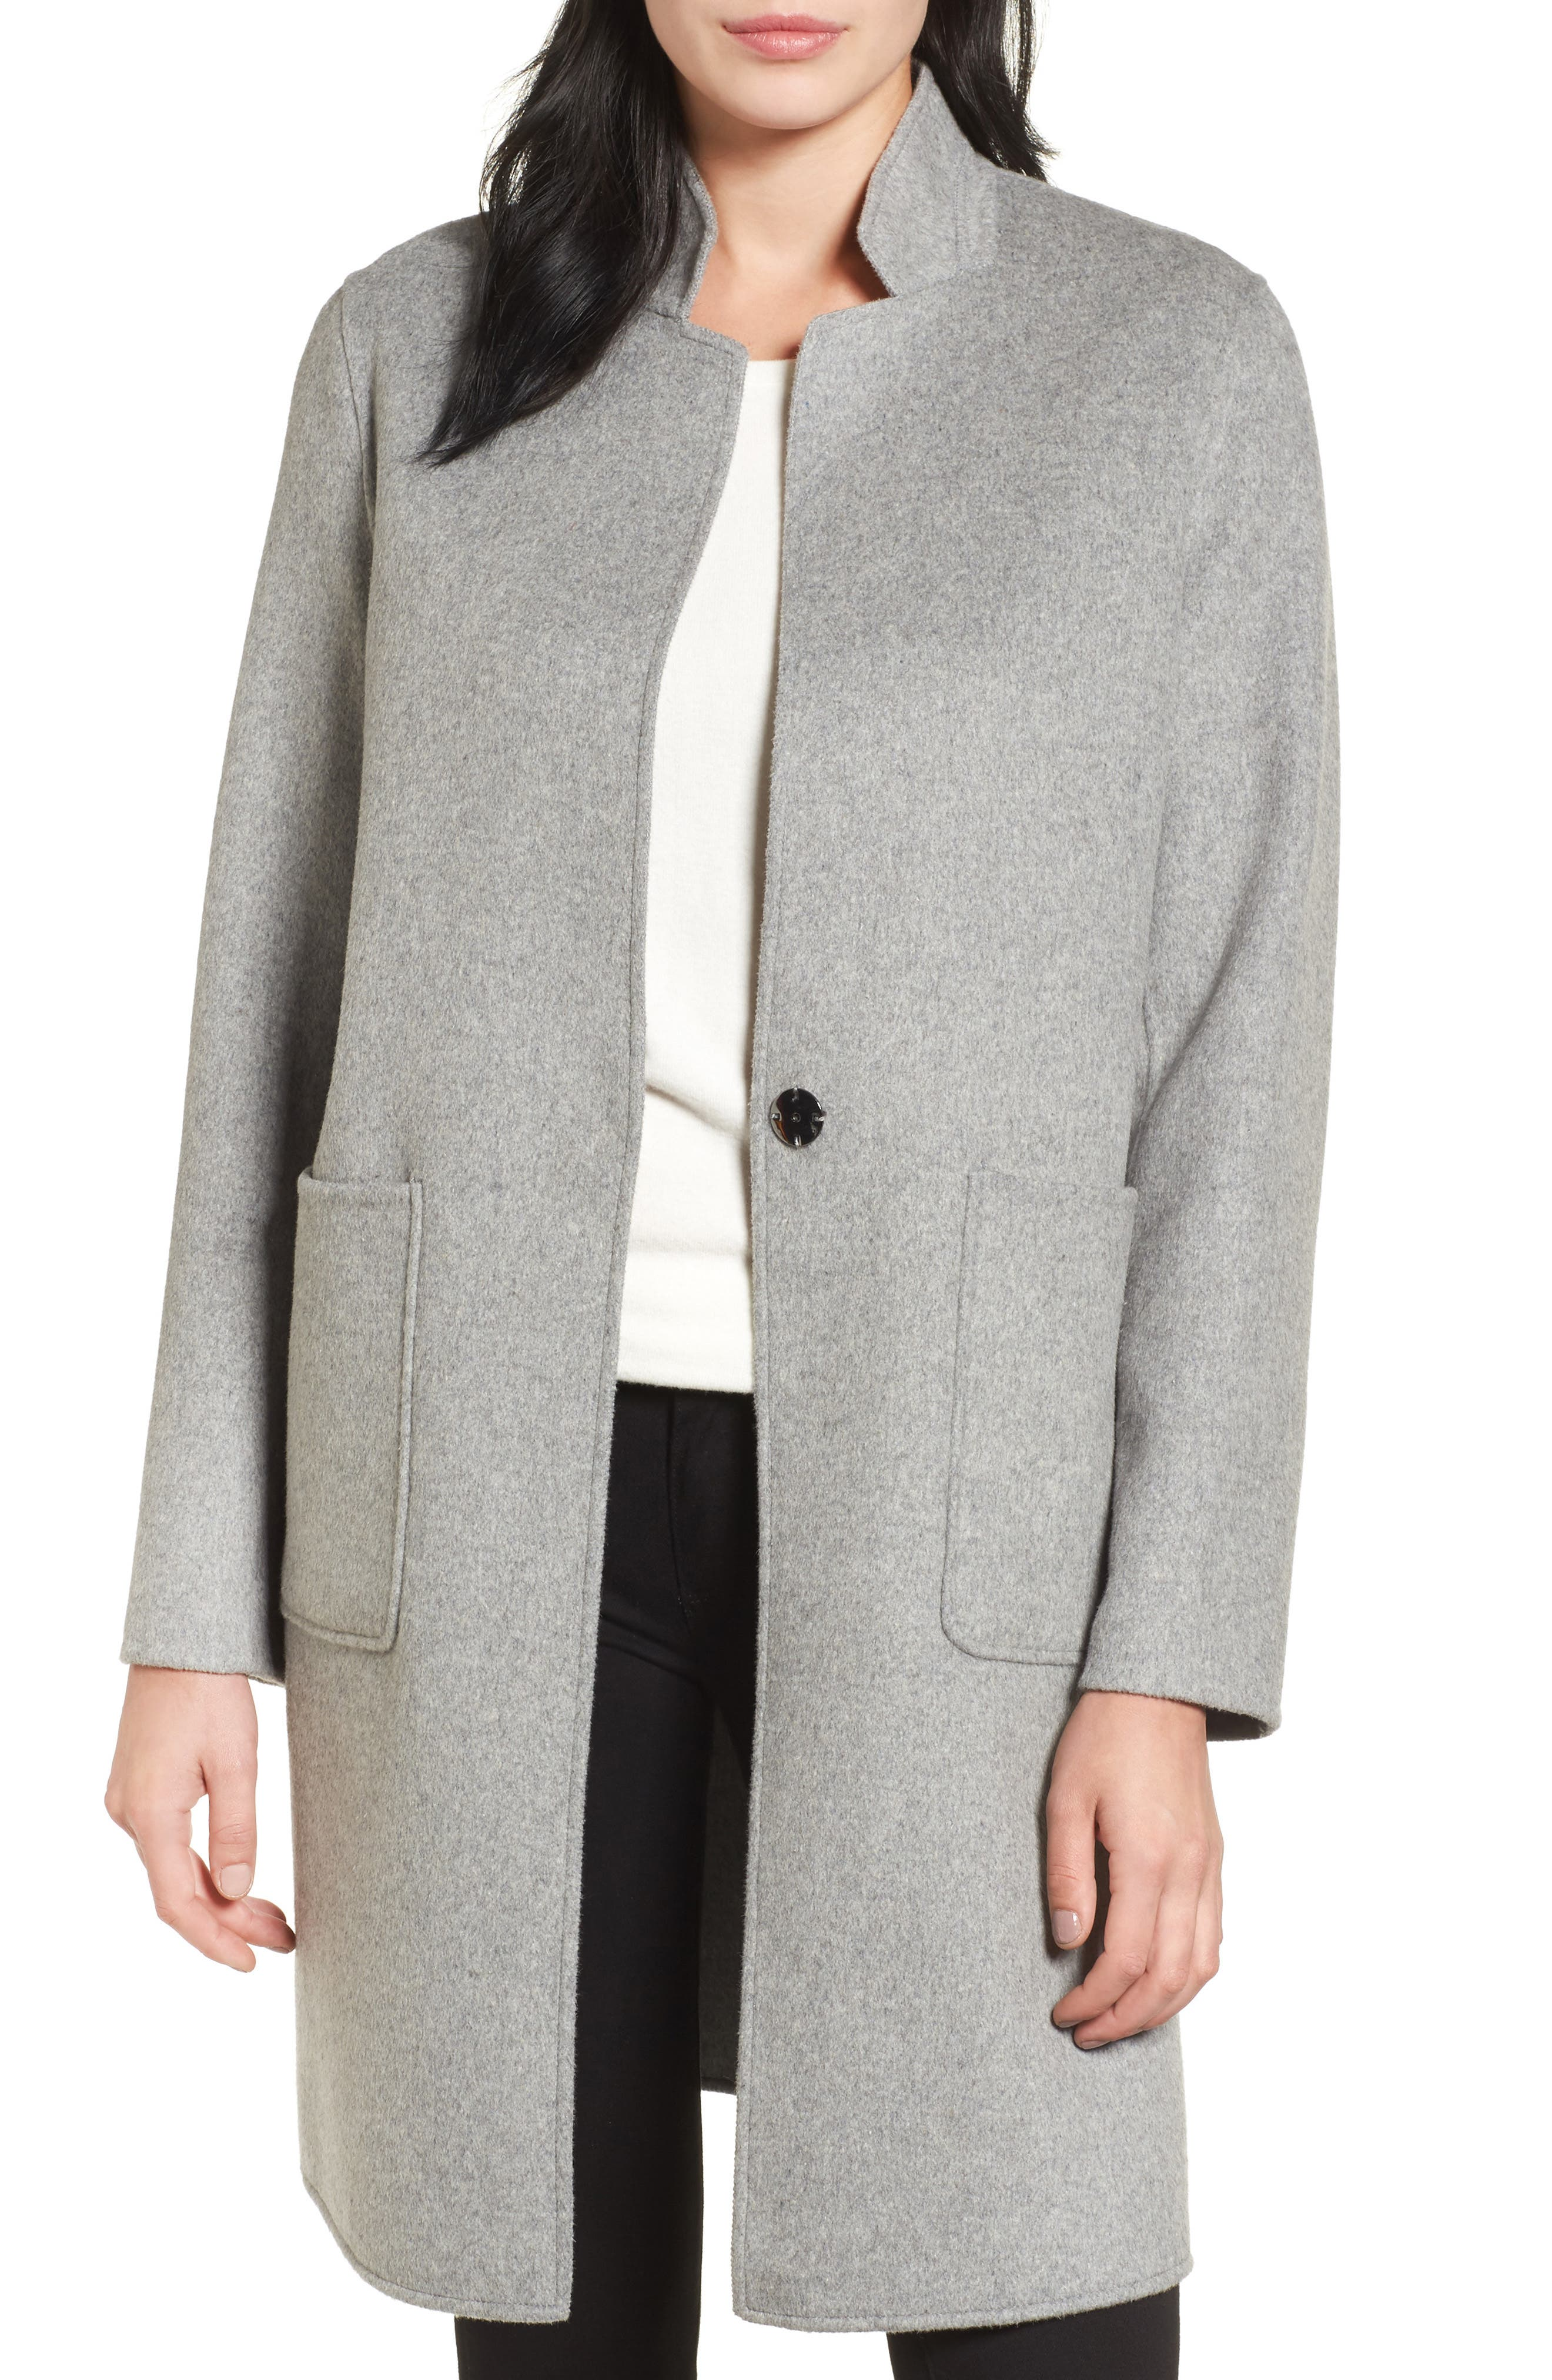 Double Face Wool Blend Coat,                             Main thumbnail 1, color,                             Light Grey